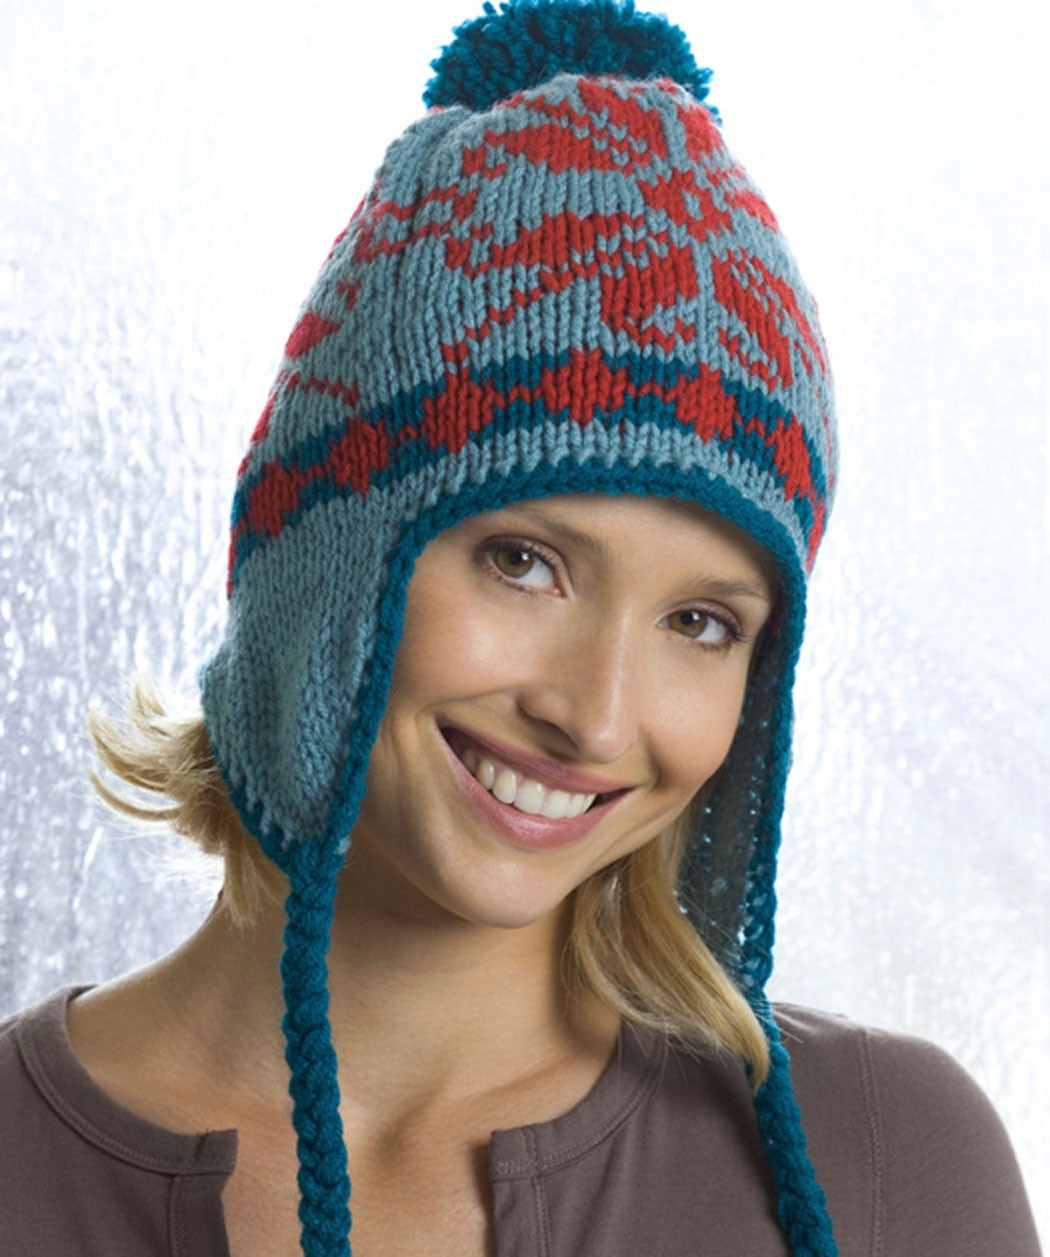 Free Knitting Patterns For Toddler Earflap Hats : Earflap Hat Knitting Pattern A Knitting Blog